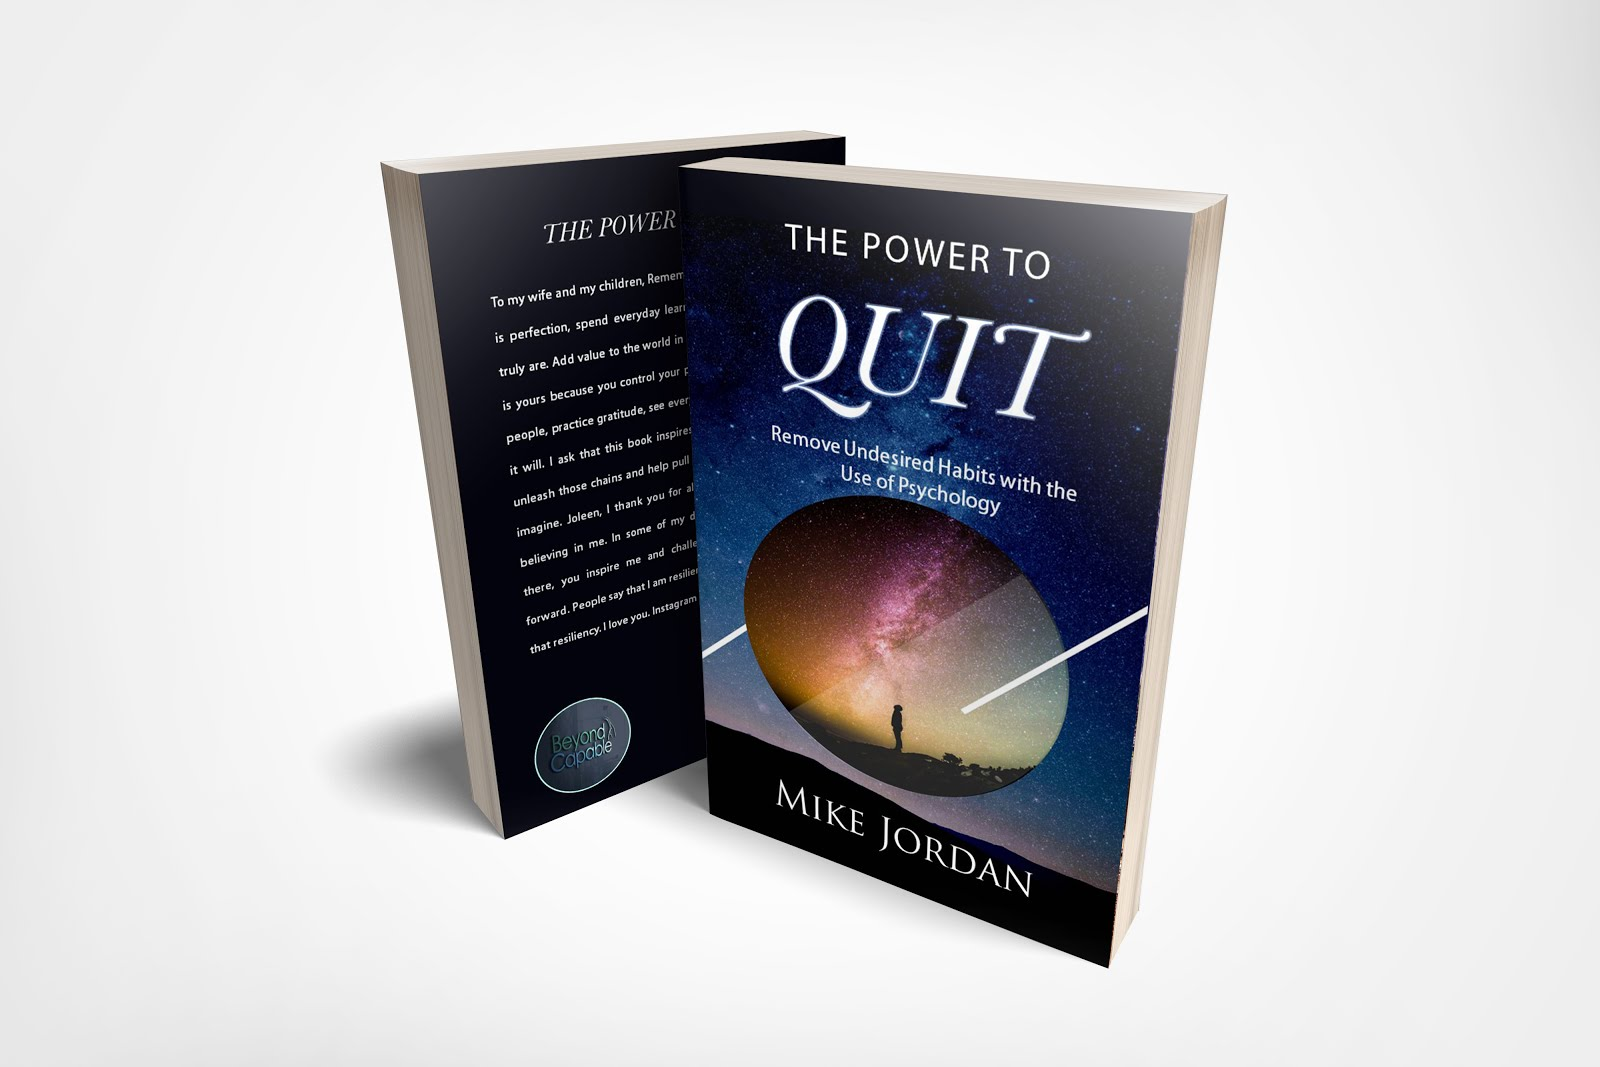 THE POWER TO QUIT: A Step by Step Program to Help You Remove Undesirable Habits/Addictions Using Me